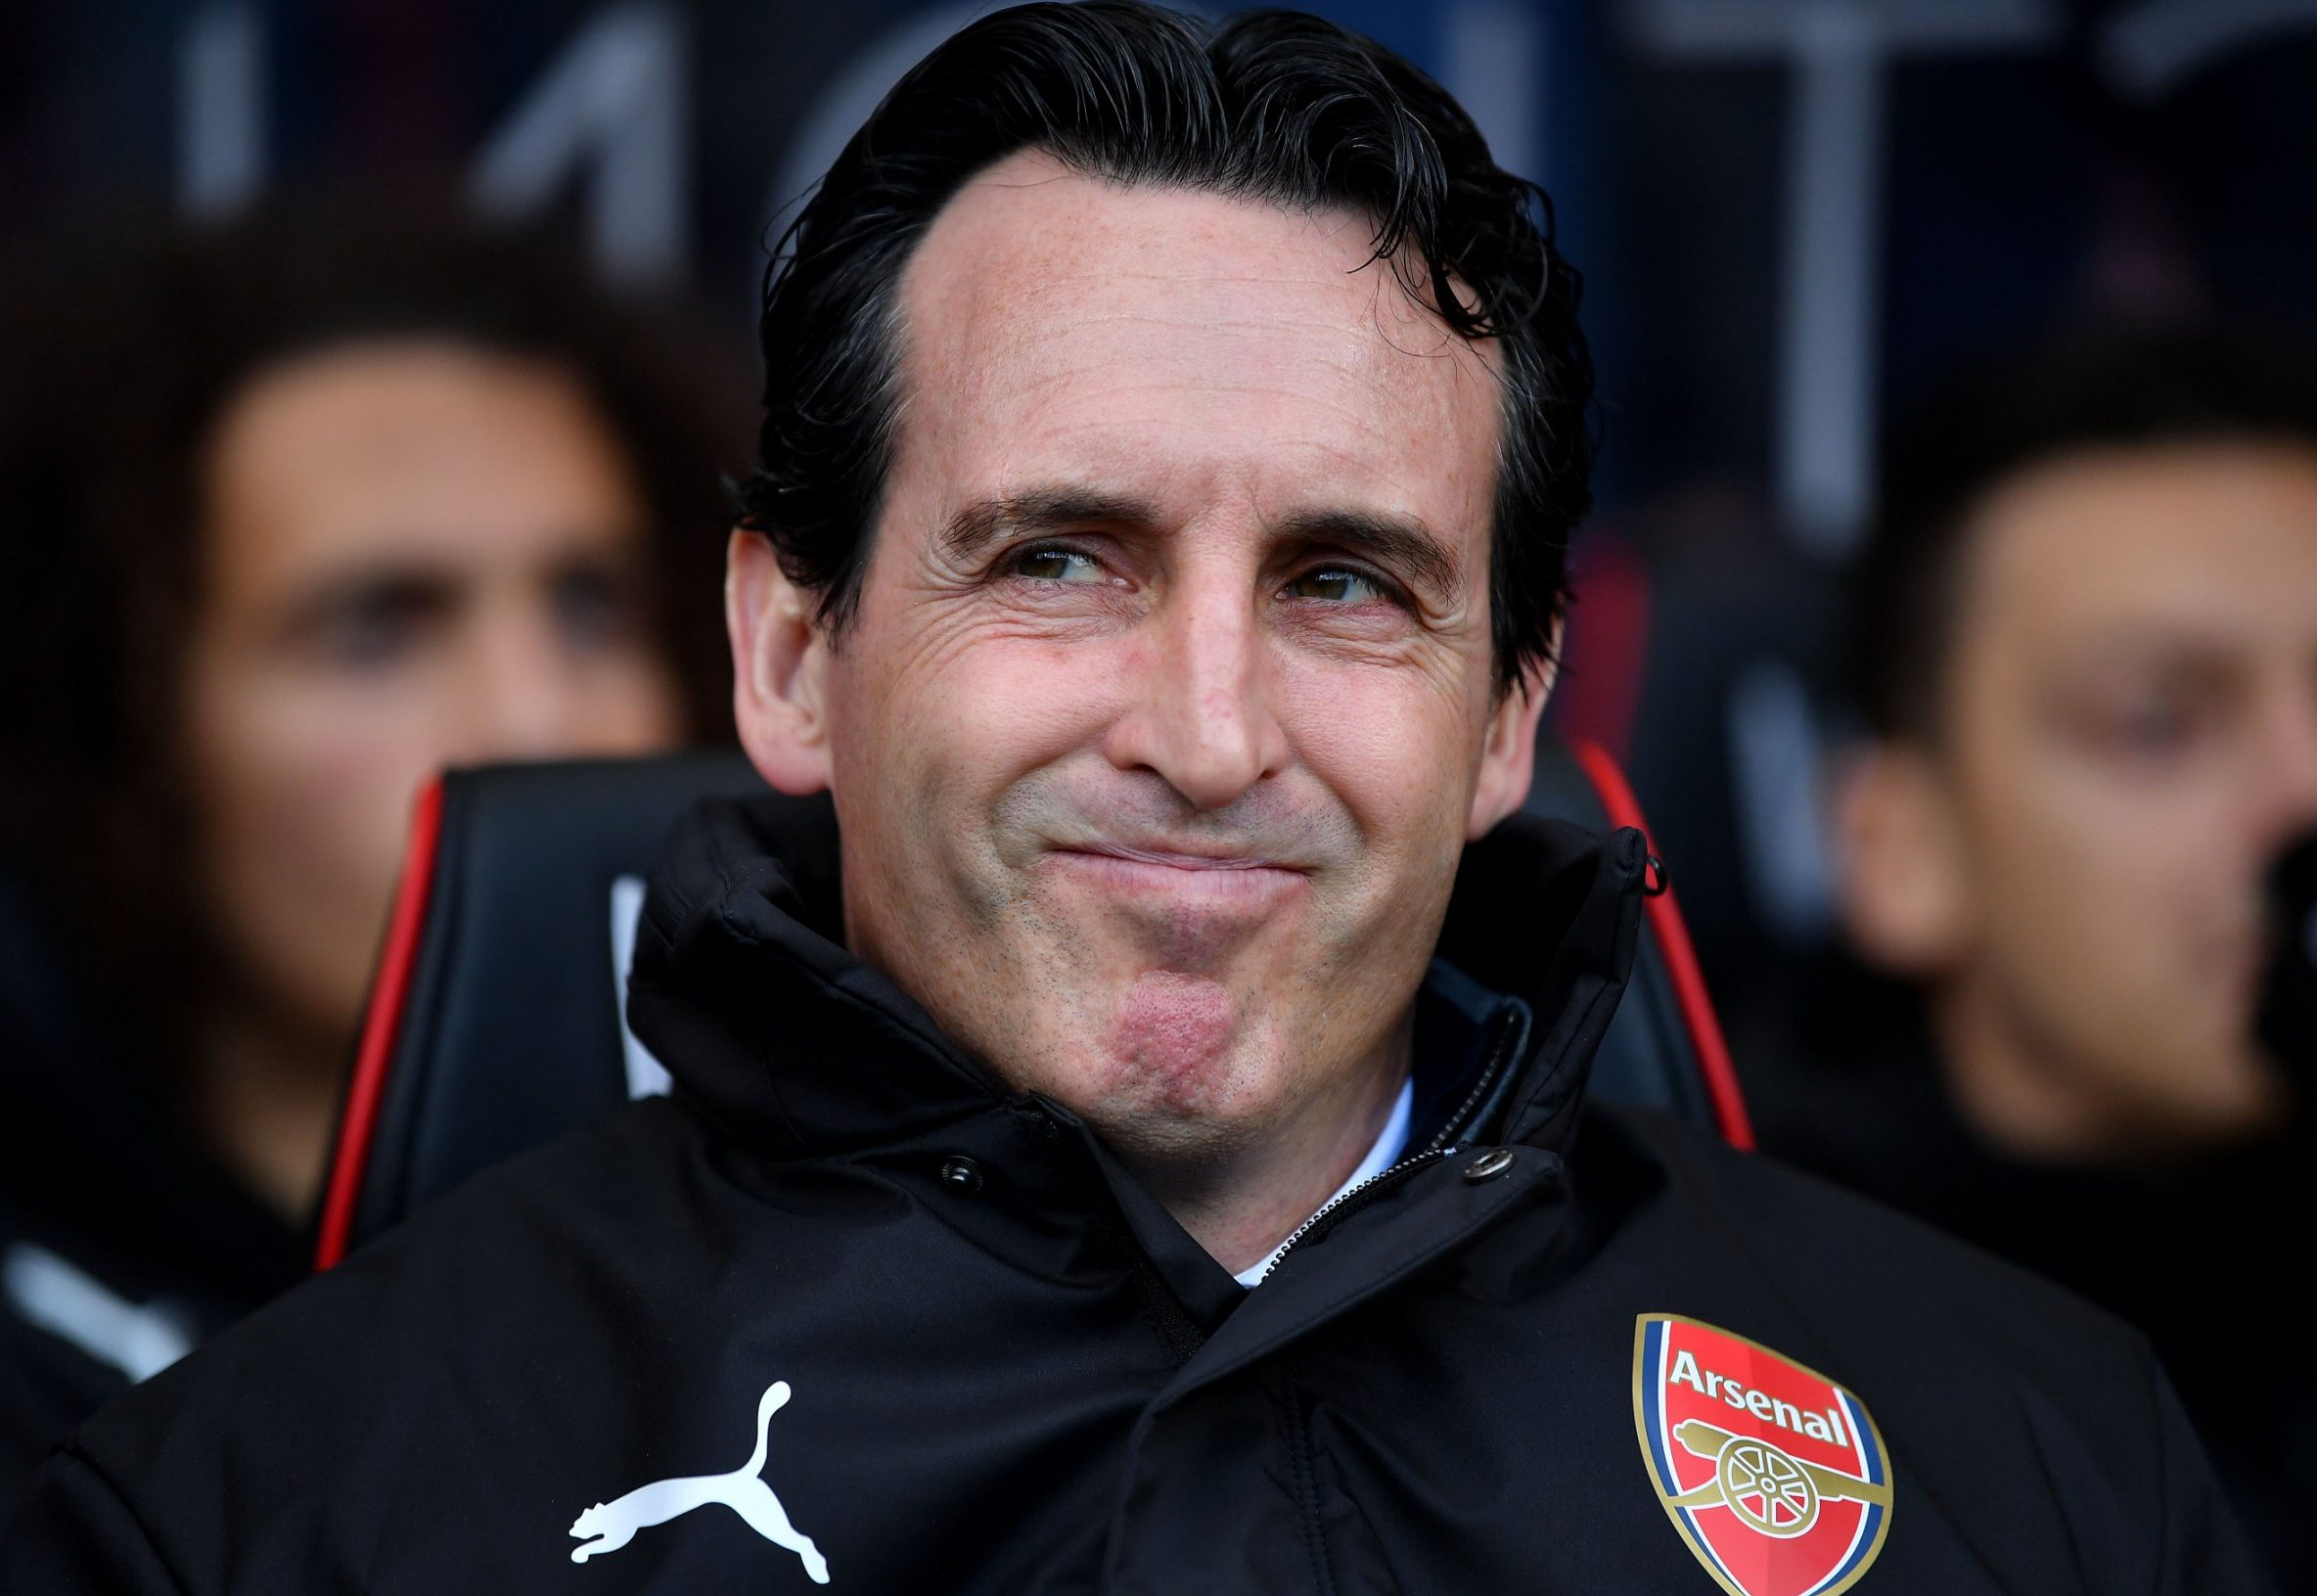 BOURNEMOUTH, ENGLAND - NOVEMBER 25: Unai Emery, Manager of Arsenal looks on prior to the Premier League match between AFC Bournemouth and Arsenal FC at Vitality Stadium on November 25, 2018 in Bournemouth, United Kingdom. (Photo by Dan Mullan/Getty Images)